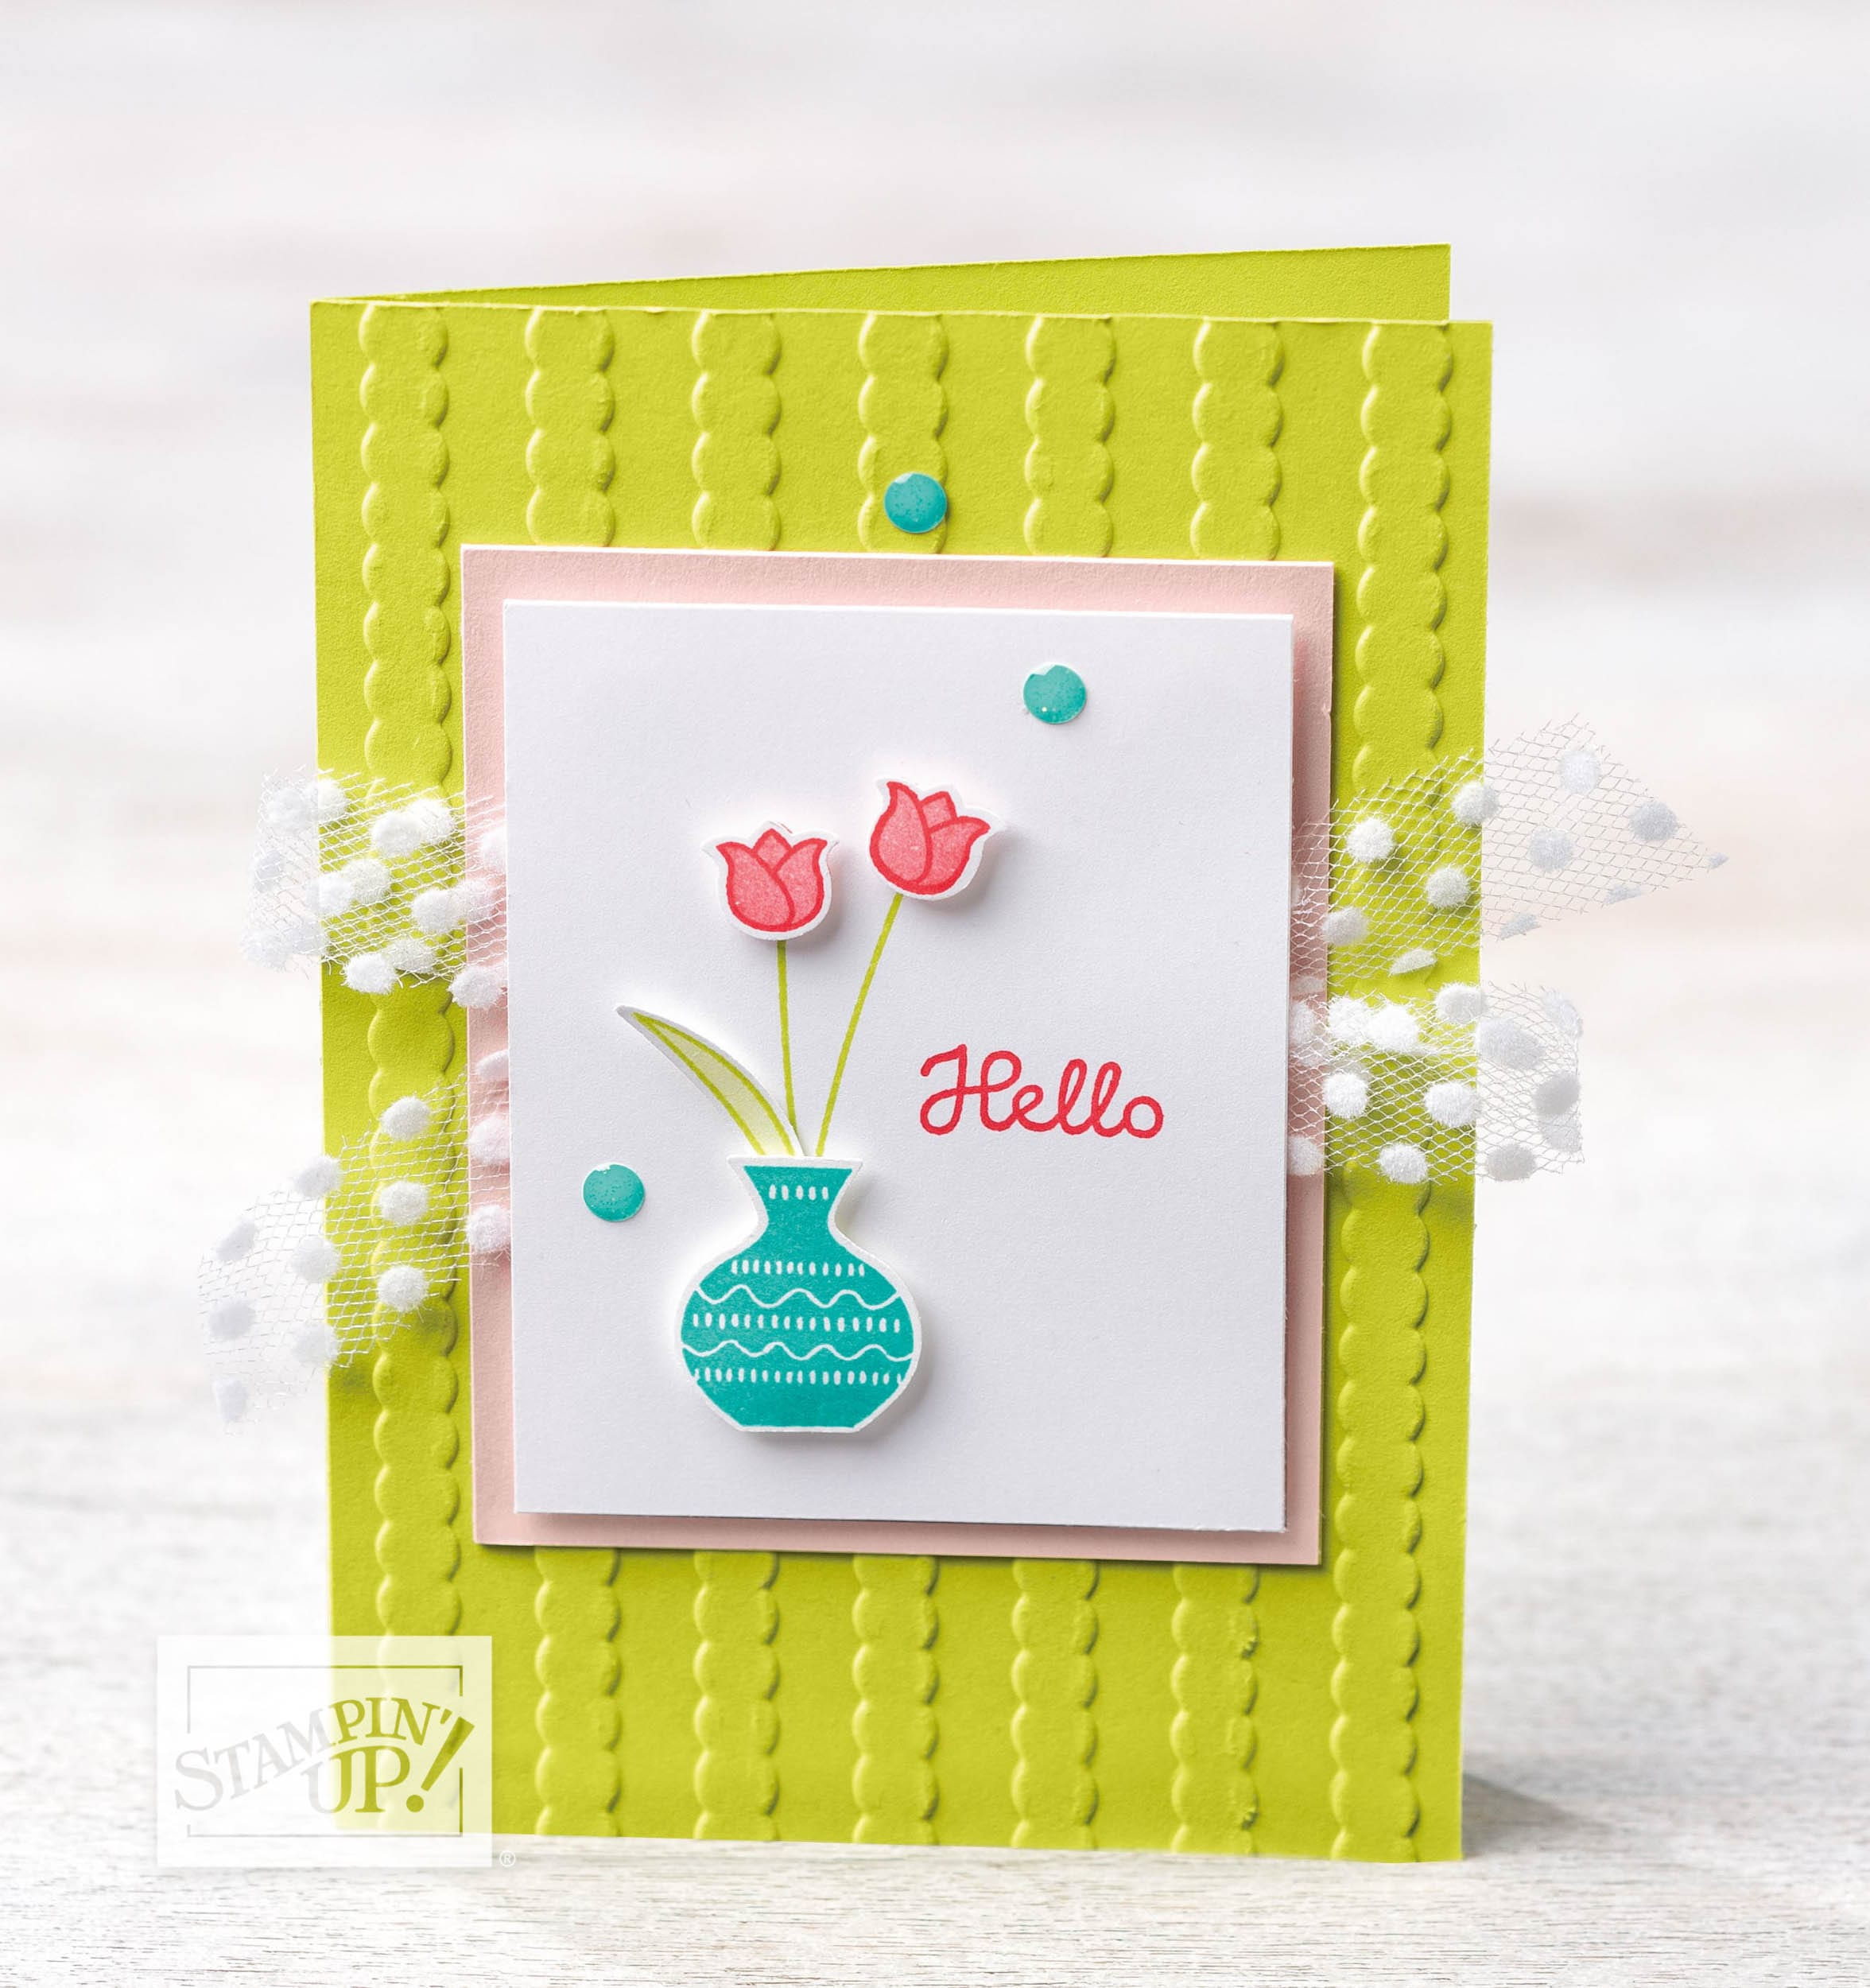 Varied Vases Fun Card, Abstract Impressions Class & Mexico!